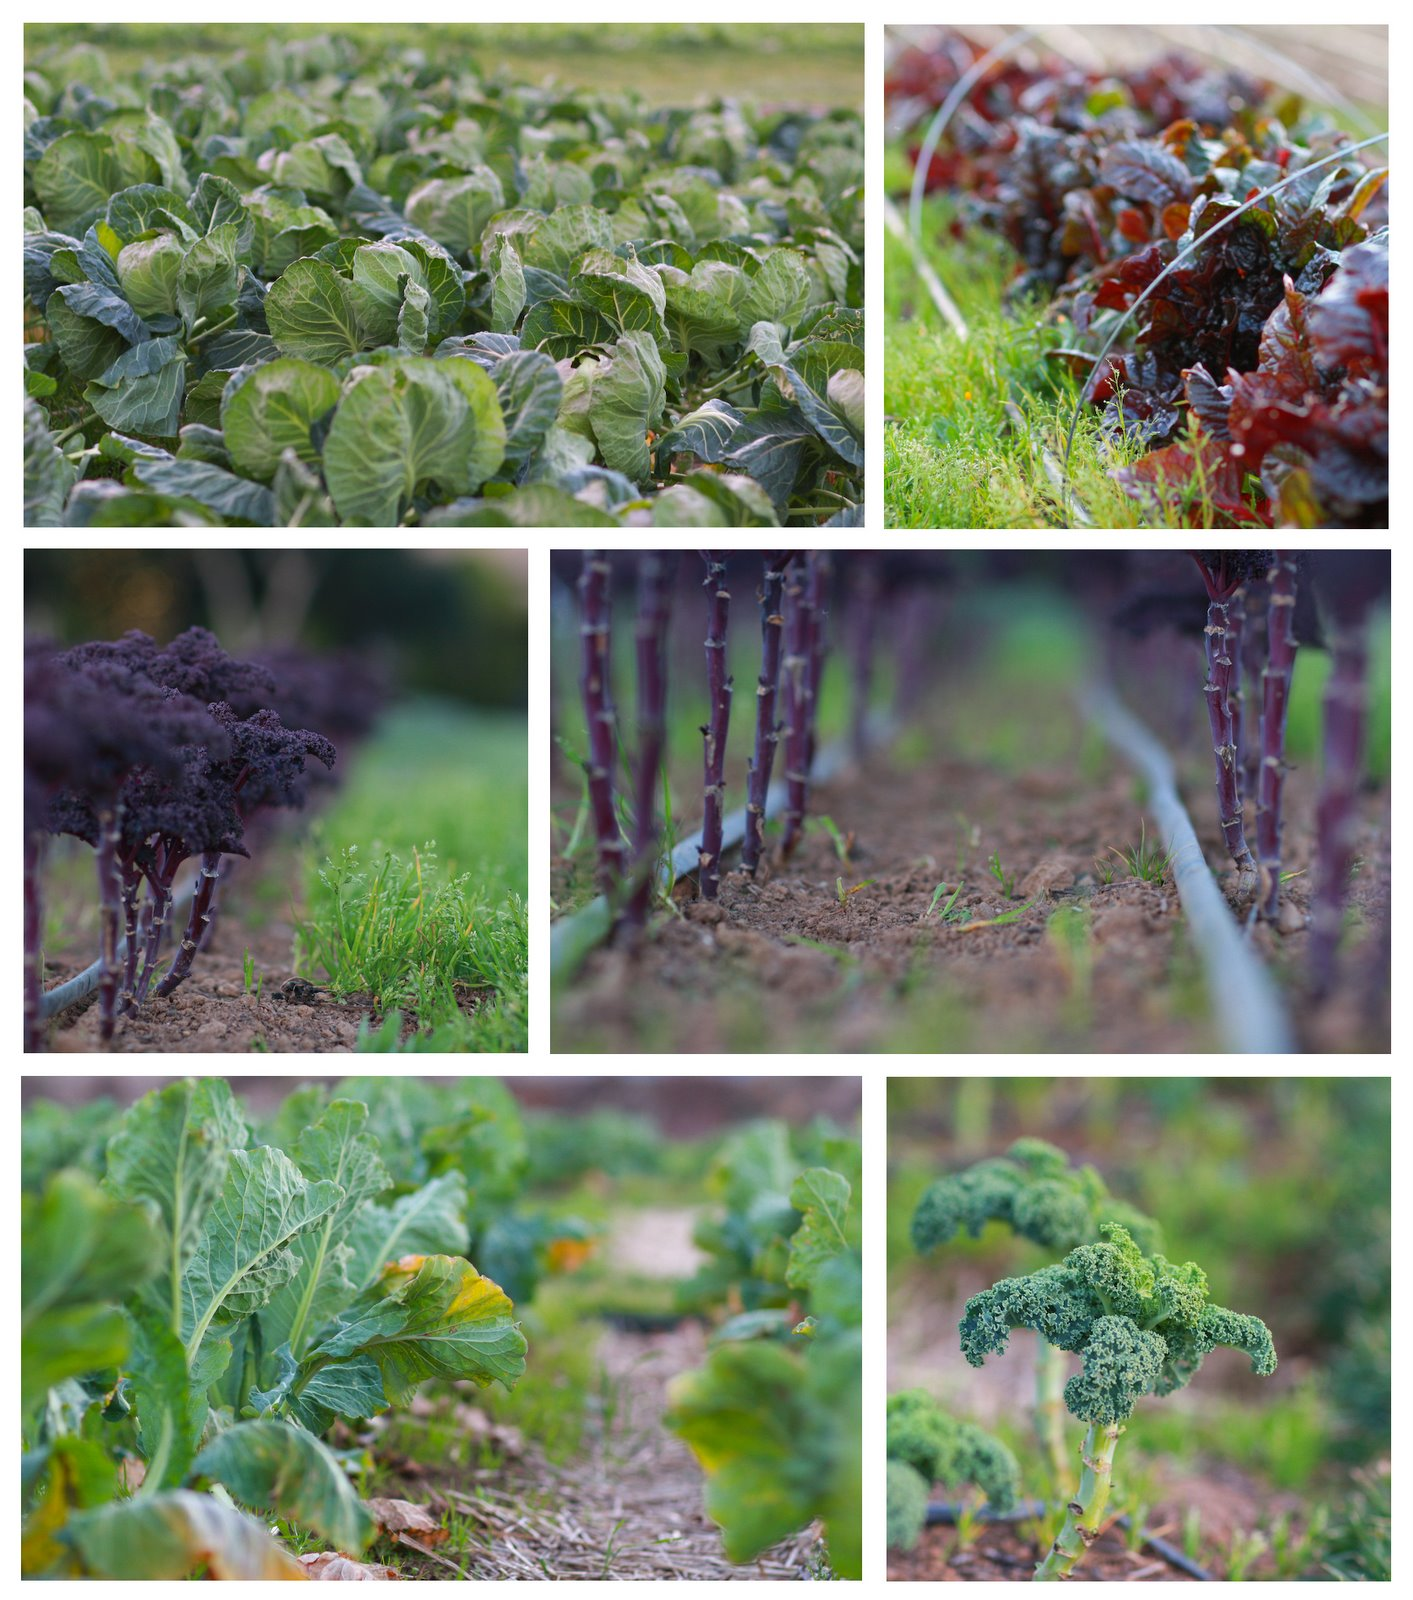 French Laundry Garden